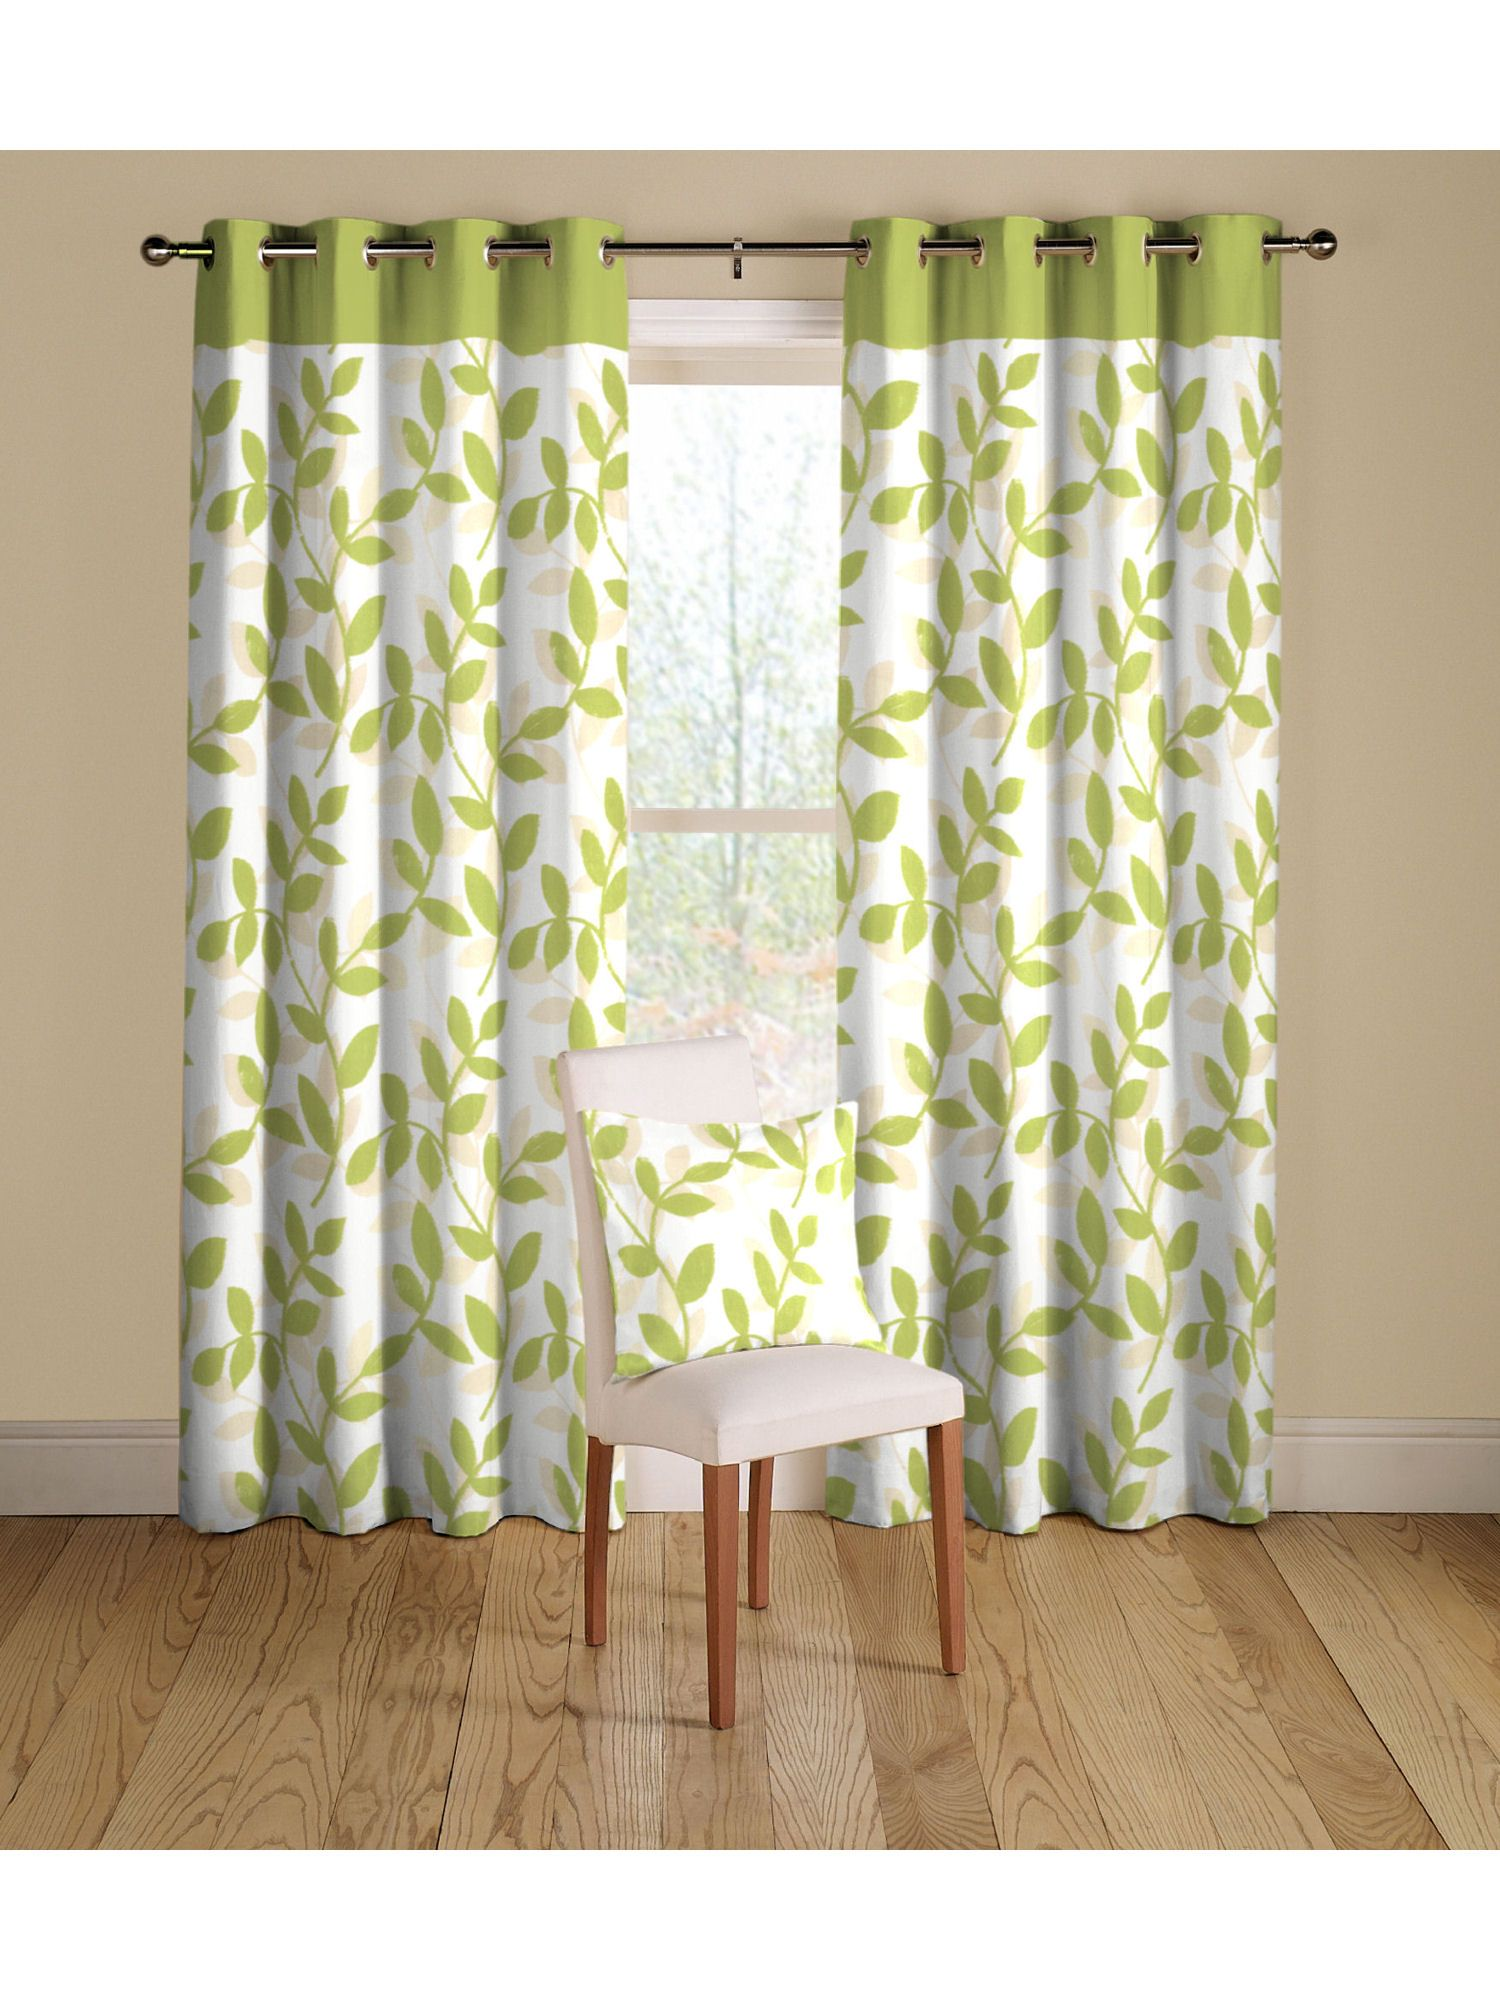 Rectella savannah curtains in green